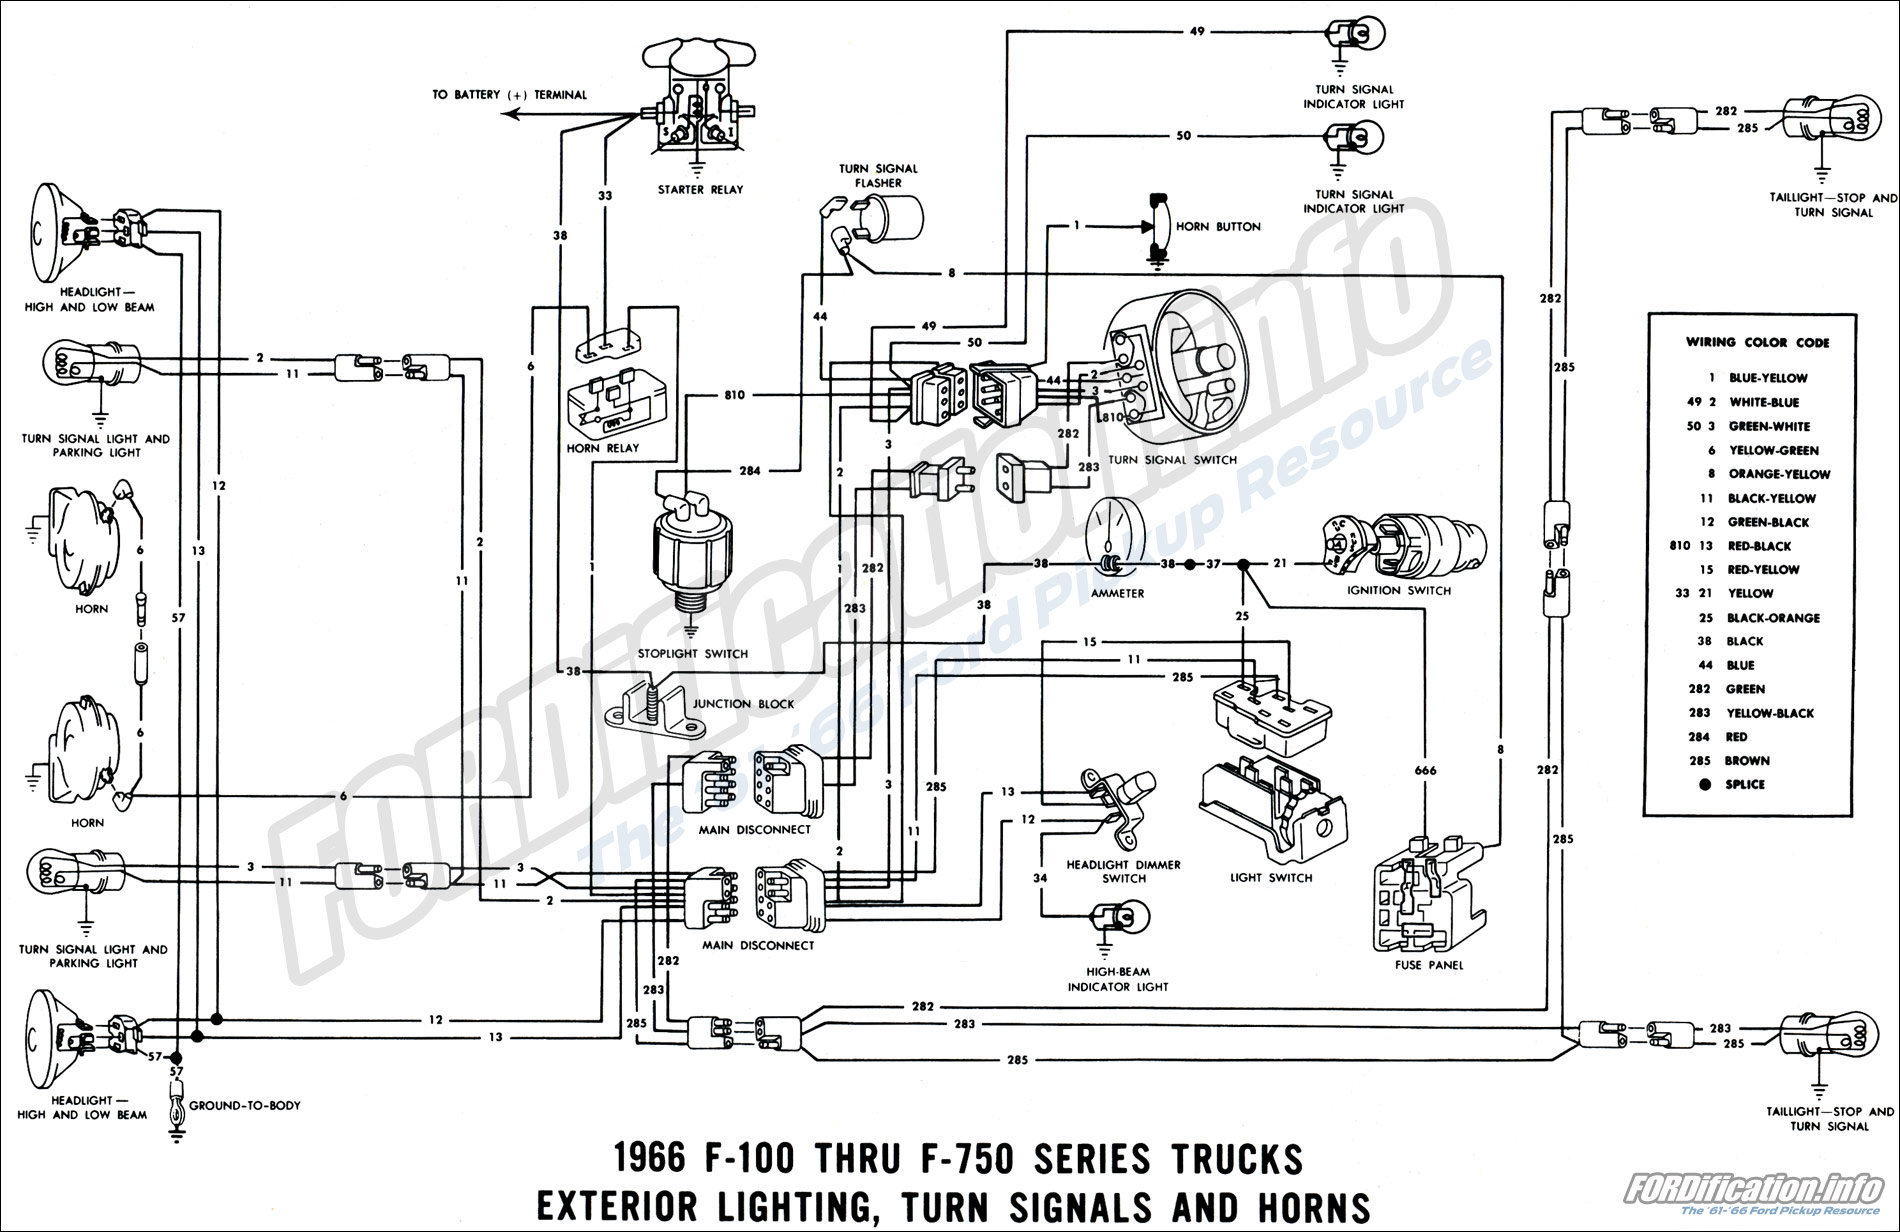 1988 ford ranger wiring diagram also ford f100 wiring diagrams in